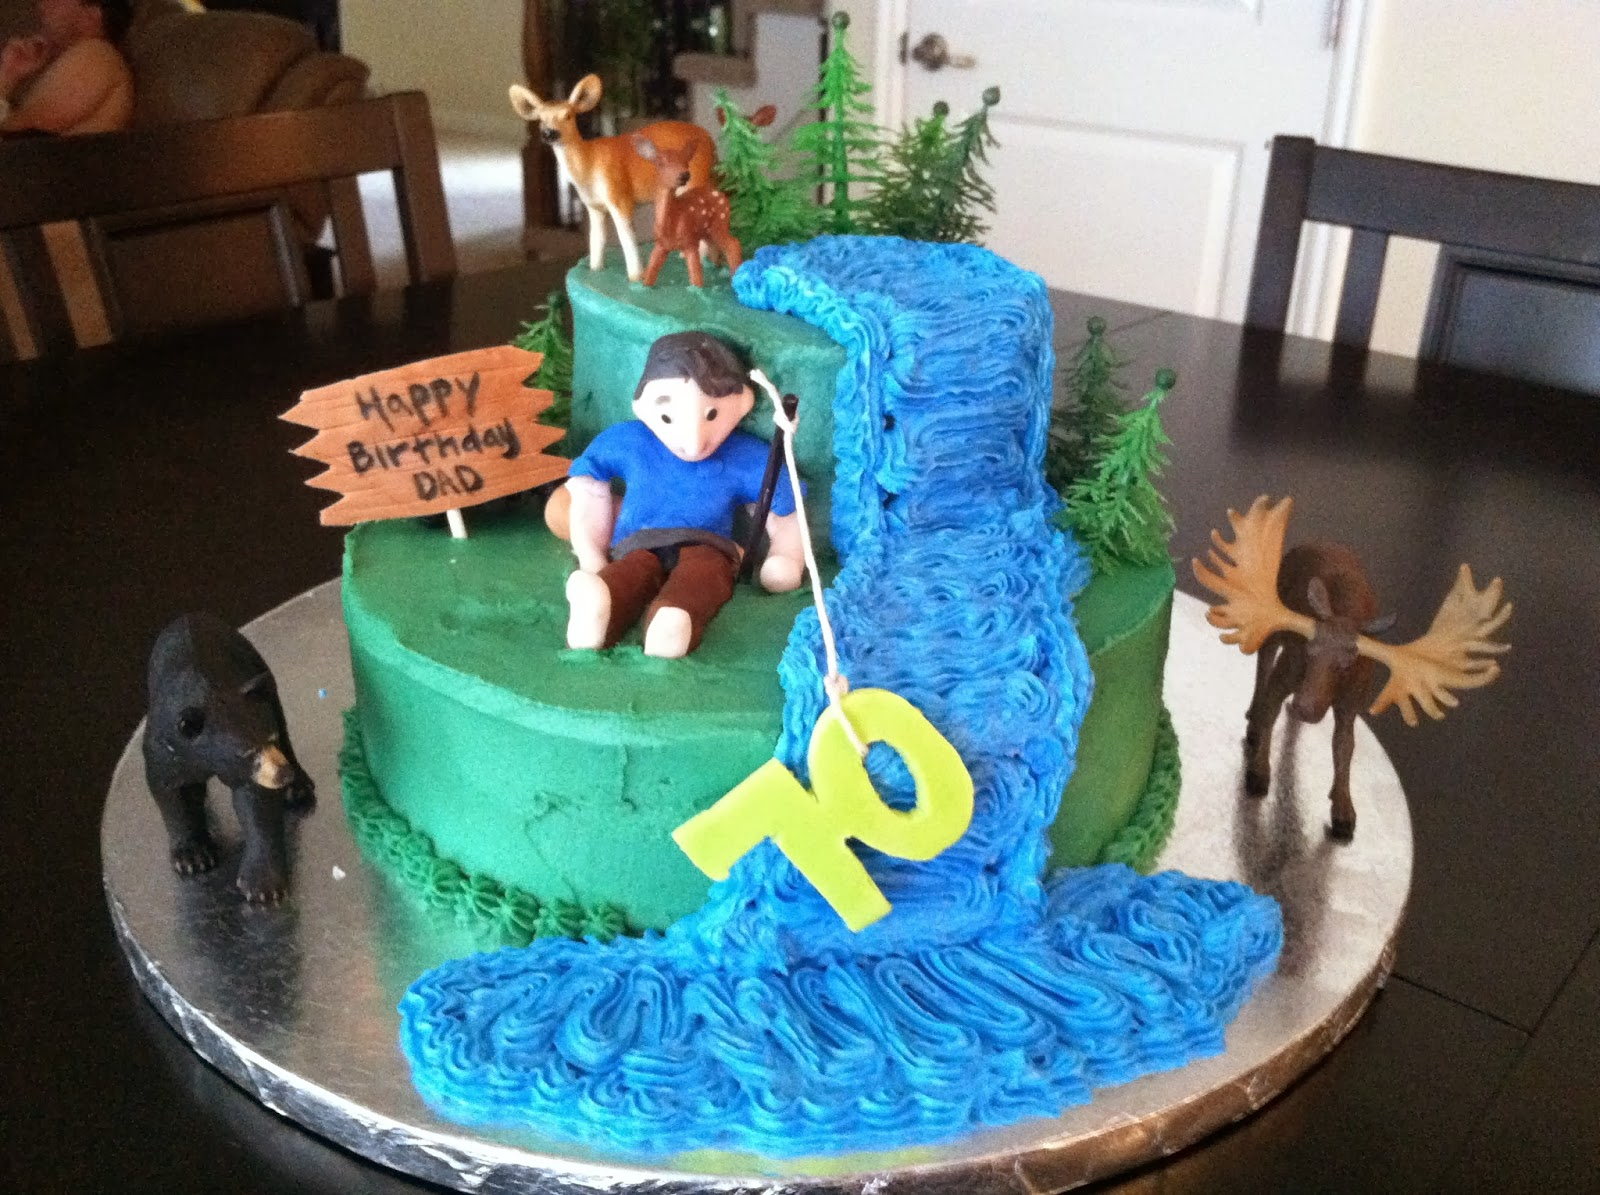 I Made This Cake For My Fathers 70th Birthday He Loves Everything Outdoors Think Really Fit His Personality Happy Dad